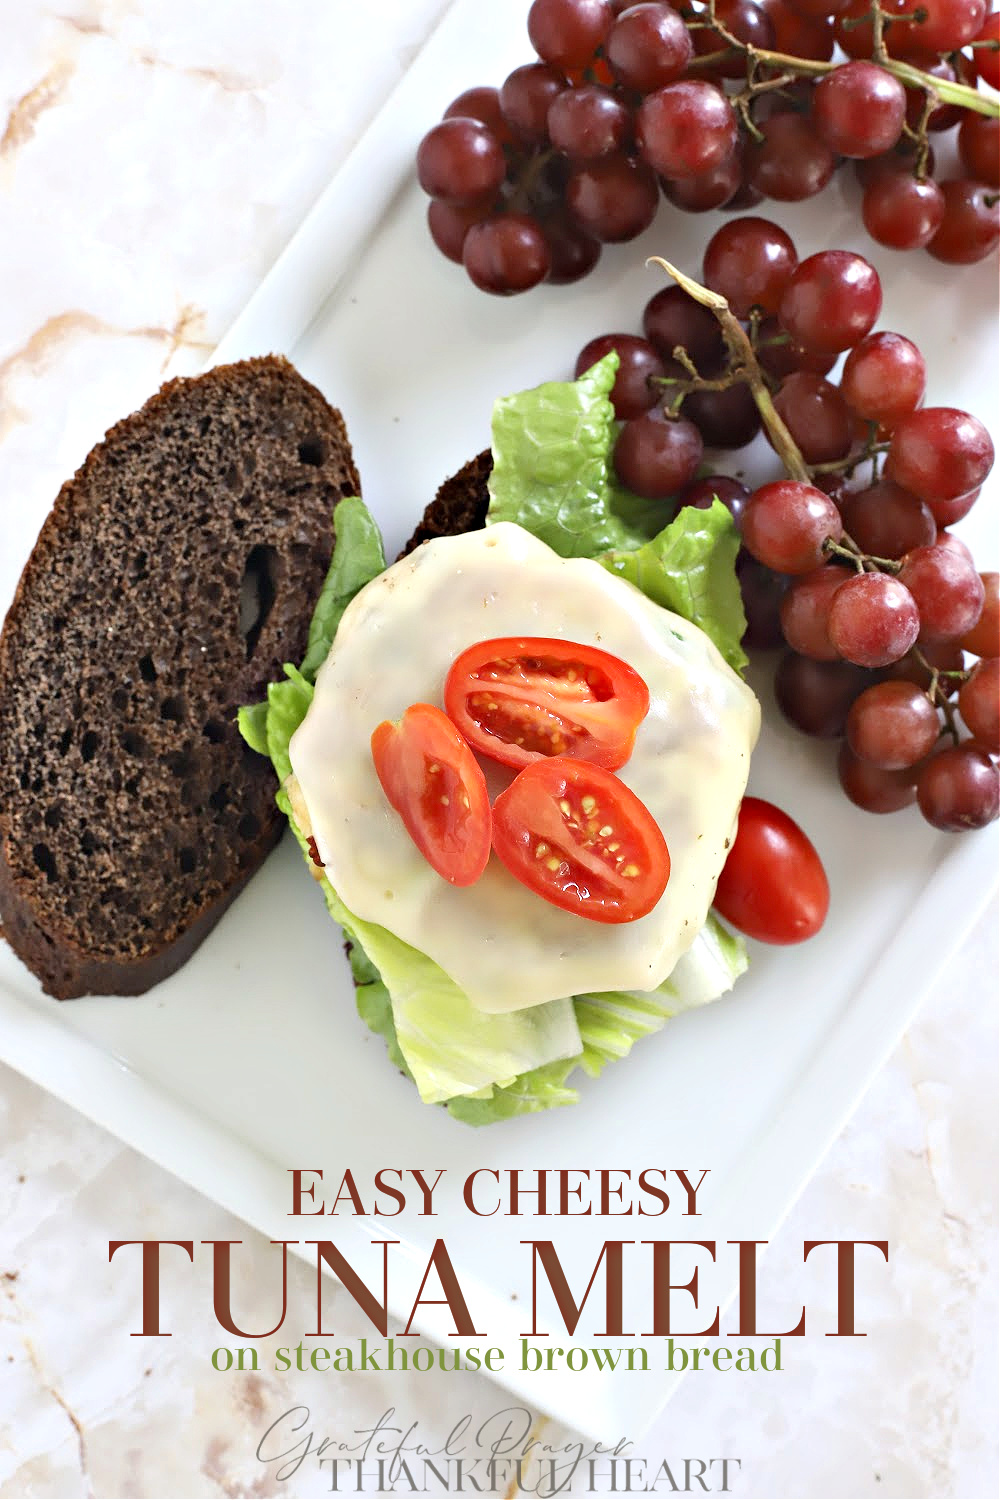 Easy cheesy tuna melt. Classic tuna melt patties are really simple to make and make a warm and tasty lunch or light dinner. Serve on steakhouse brown bread, toasted bun or English Muffin.